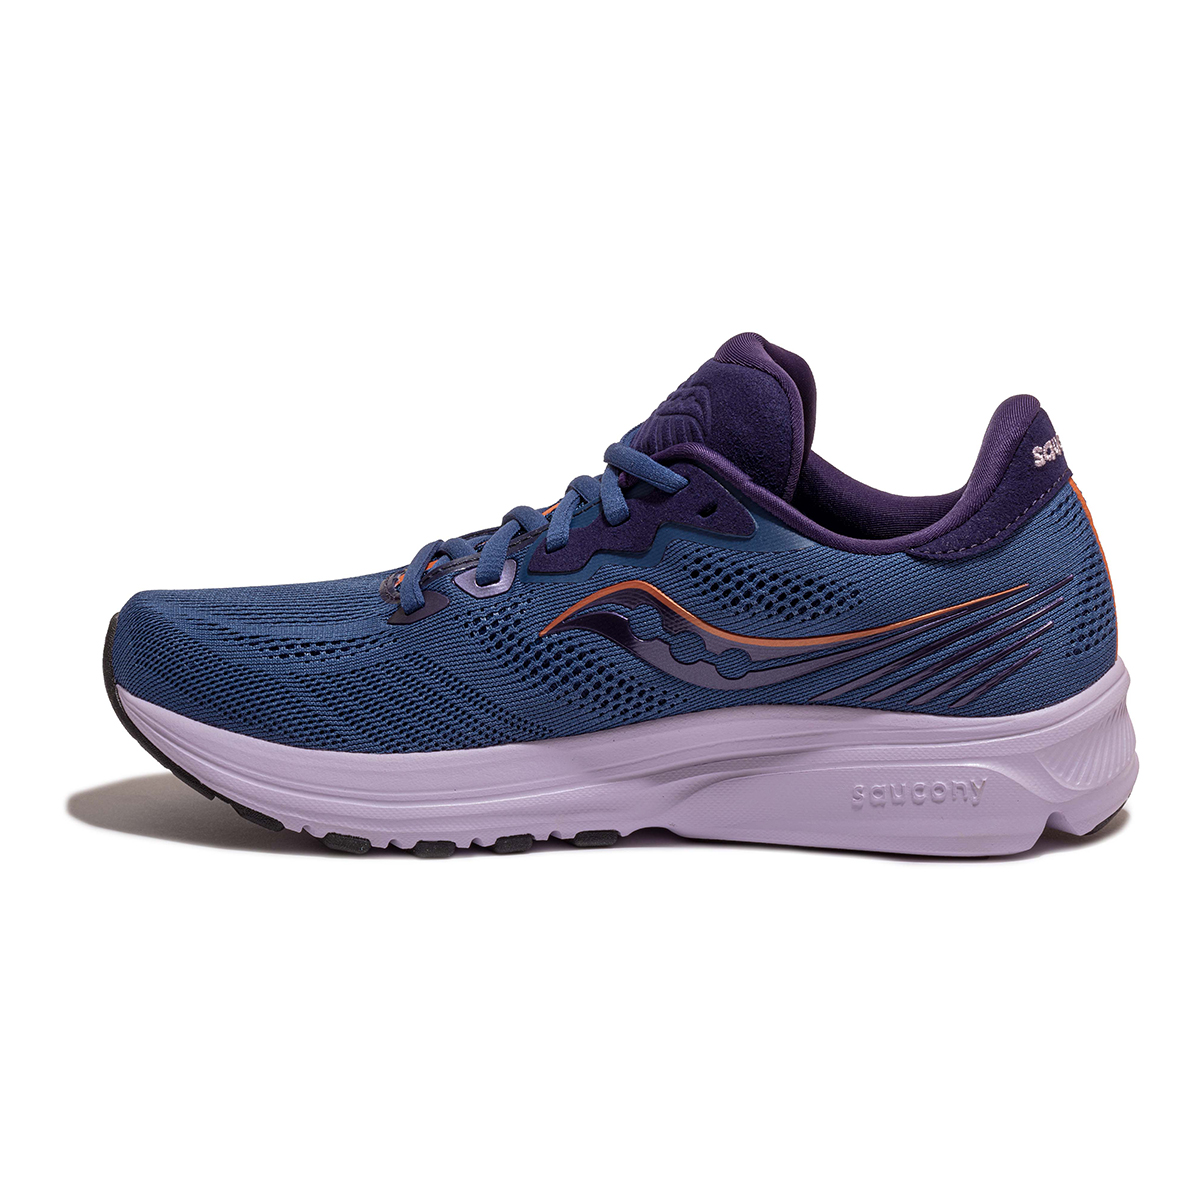 Women's Saucony Ride 14 Running Shoe - Color: Midnight/Copper - Size: 5 - Width: Regular, Midnight/Copper, large, image 2